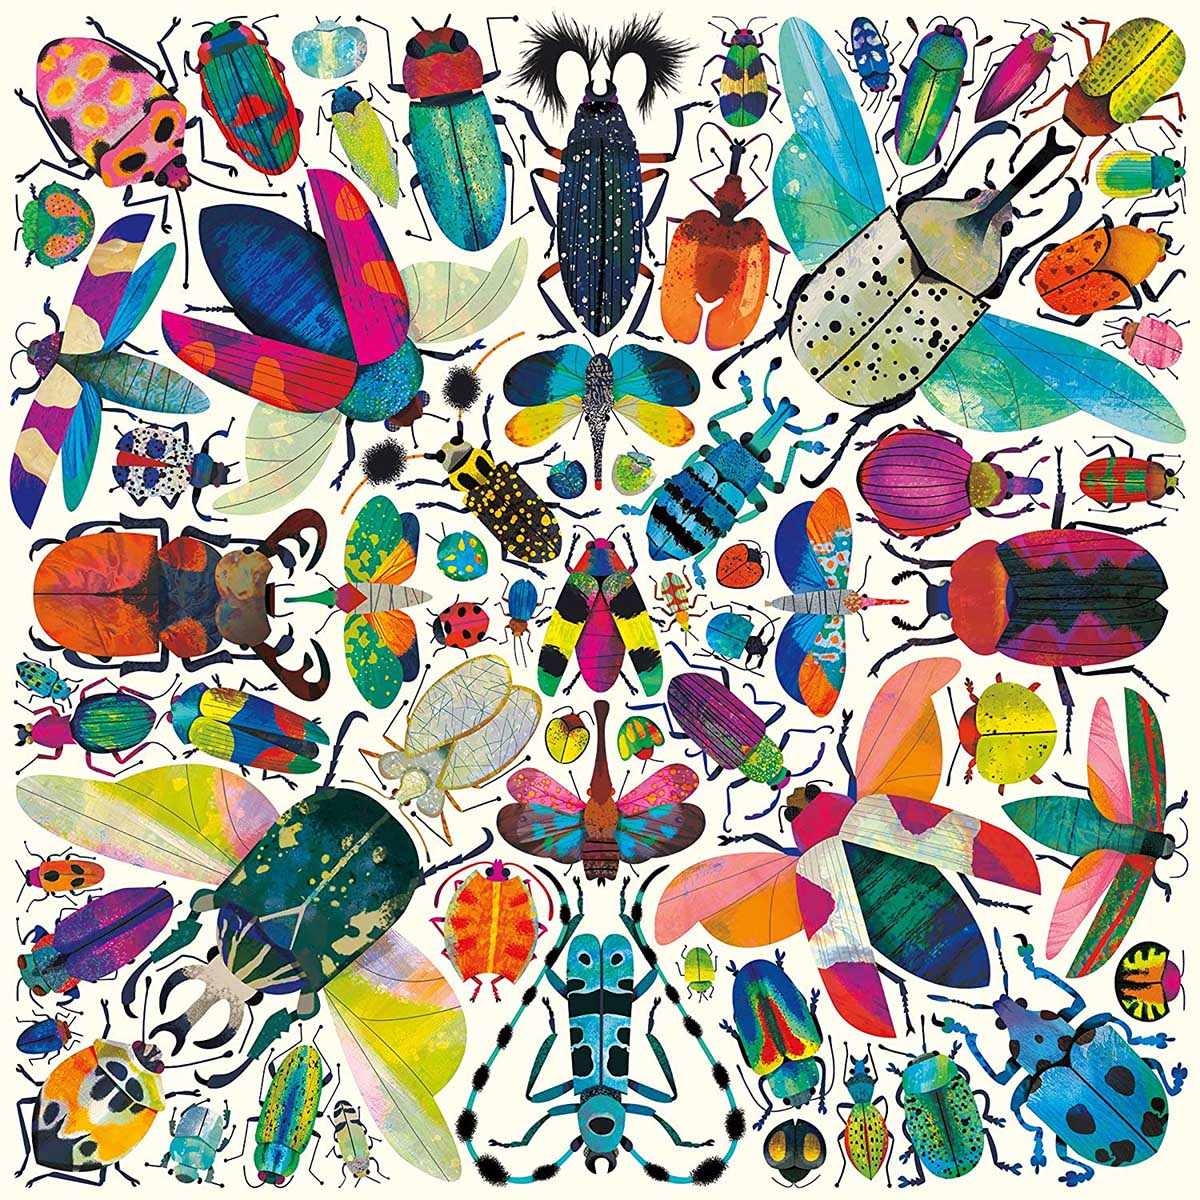 Kaleido Beetles Butterflies and Insects Jigsaw Puzzle